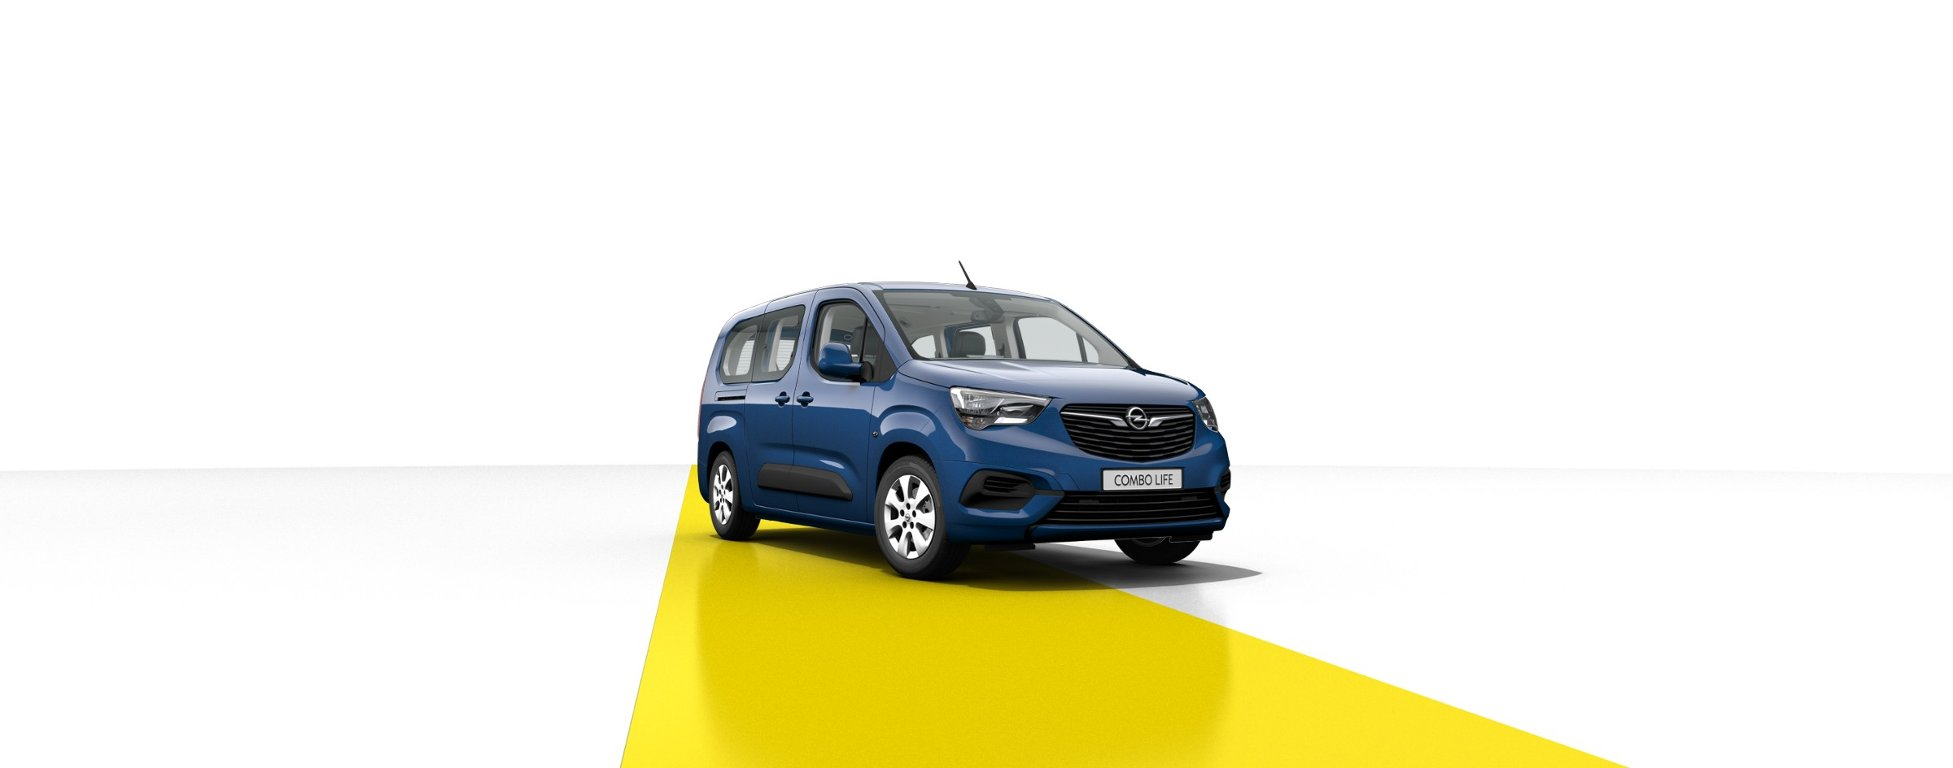 Opel Combo LIFE Smile XL 1.2 Turbo